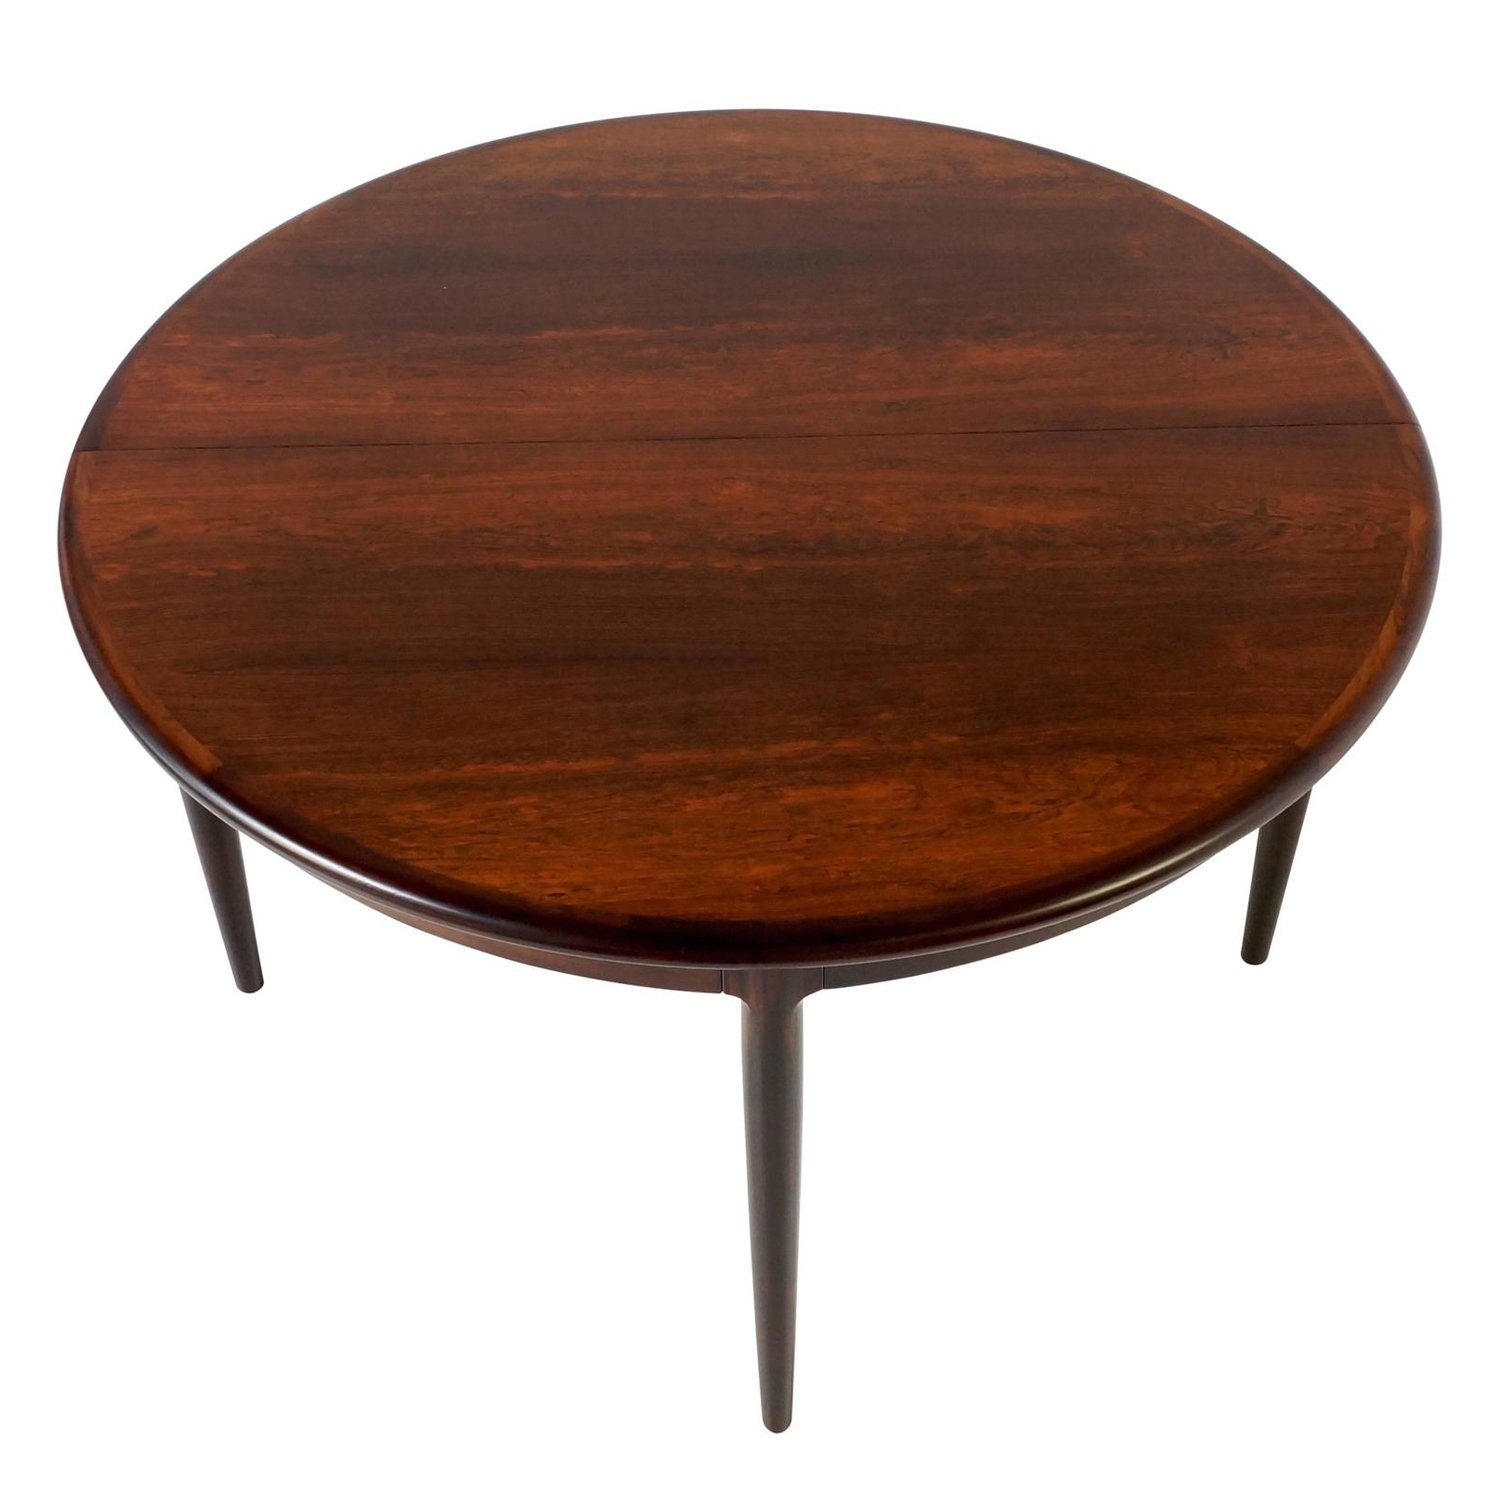 1960s Round Extendable Danish Dining Table By Niels Otto Møller In Rosewood